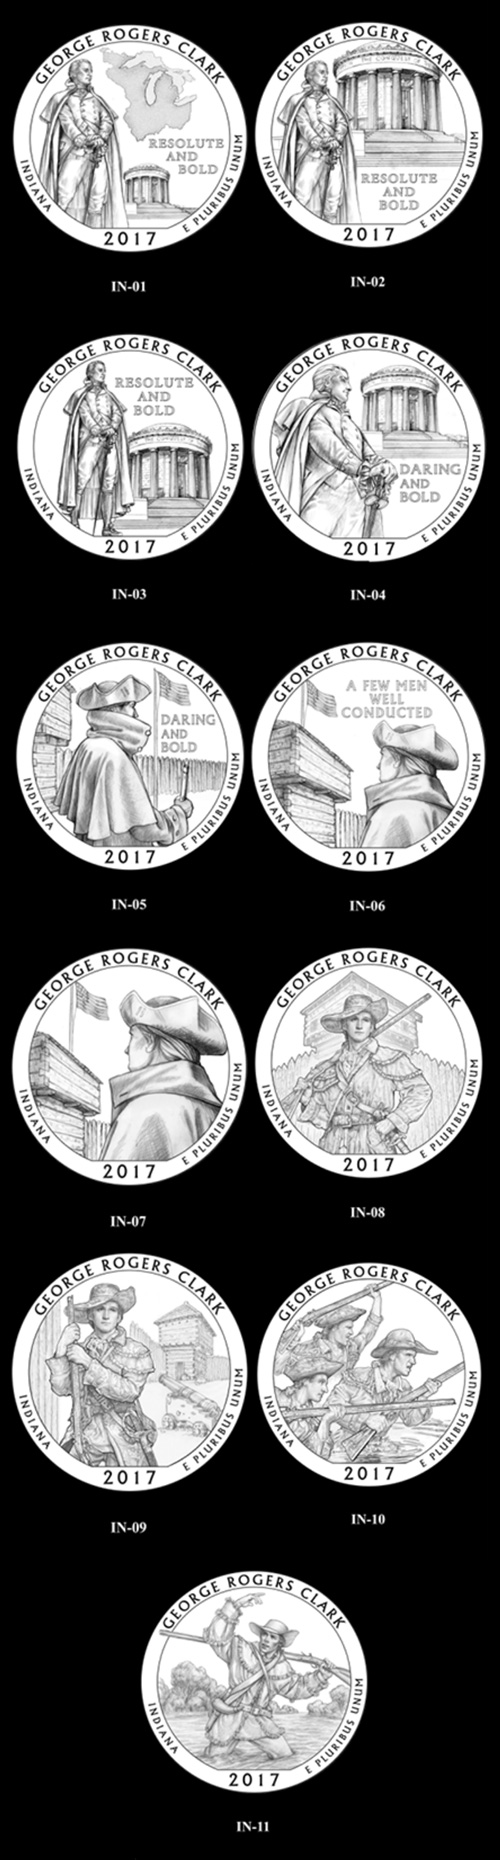 Candidate designs for the new 2017 George Rogers Clark National Historical Park quarter